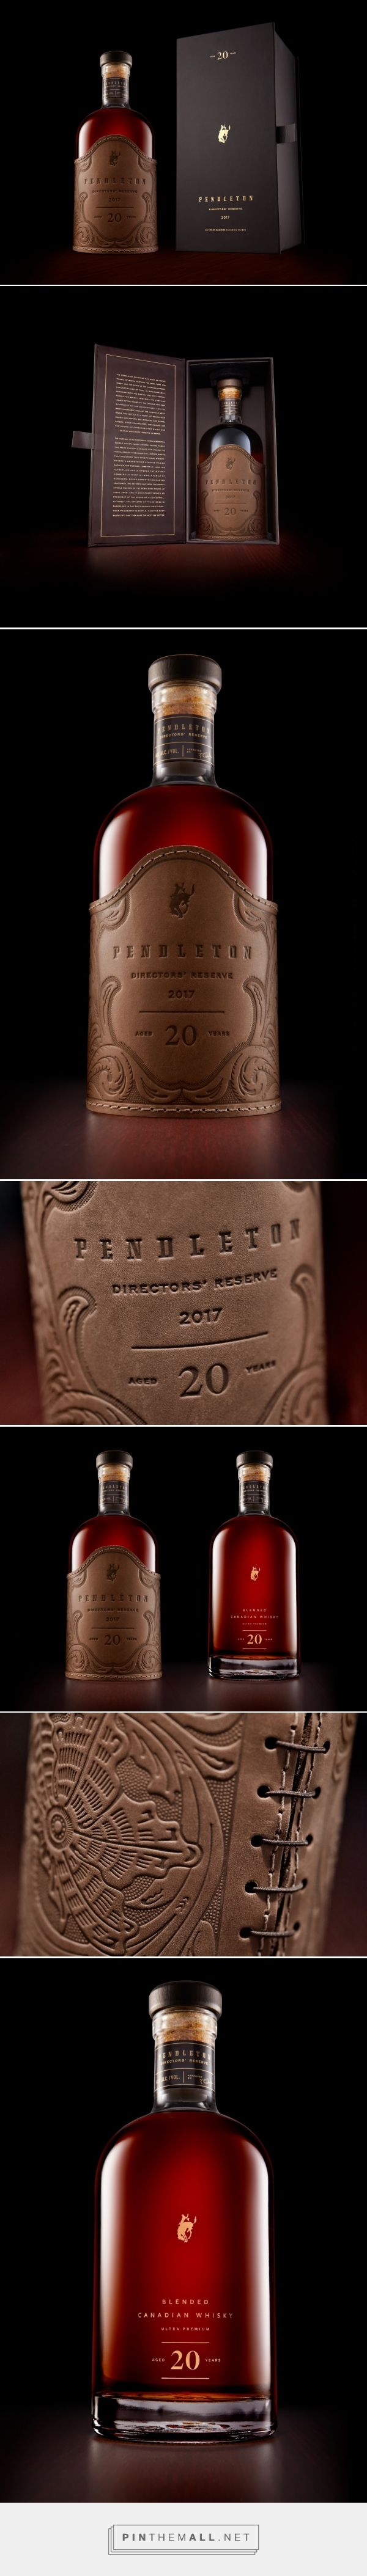 Pendleton Directors' Reserve packaging design by Cue - http://www.packagingoftheworld.com/2016/12/pendleton-directors-reserve.html